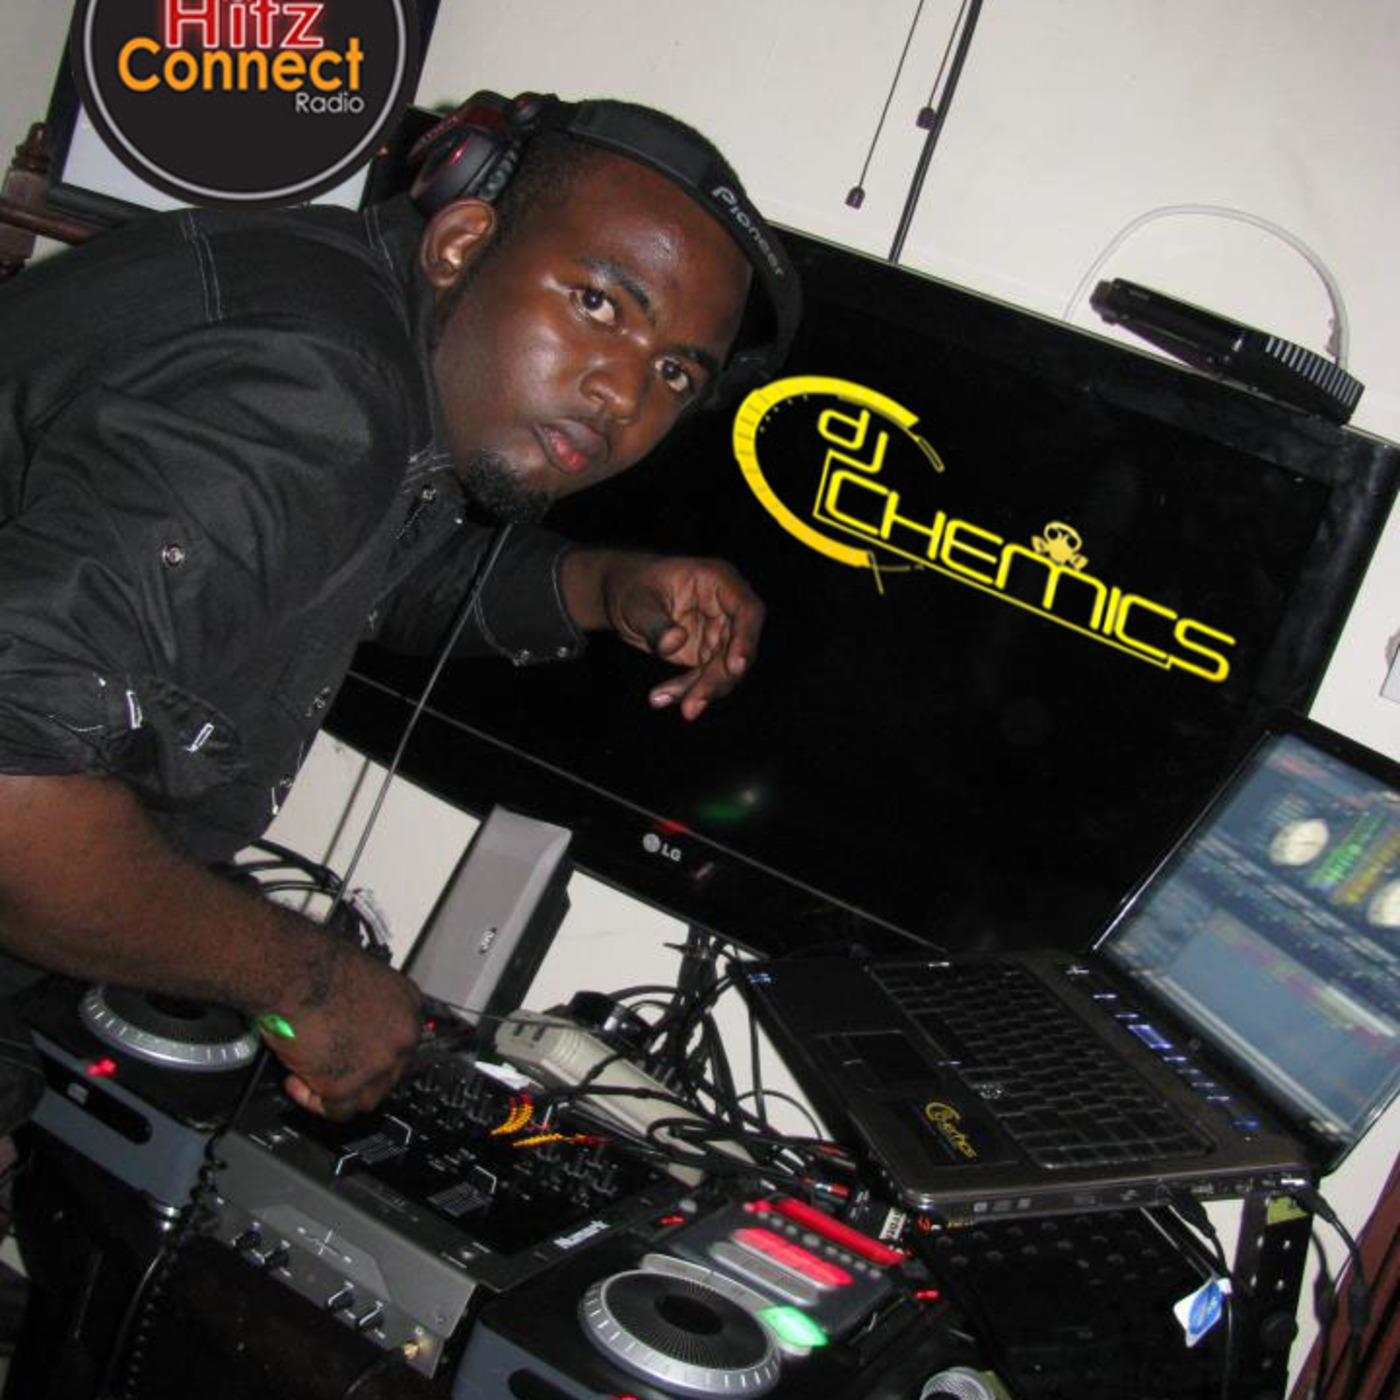 Dj Chemics - The Musical Chemistry - Weekend Radio Show